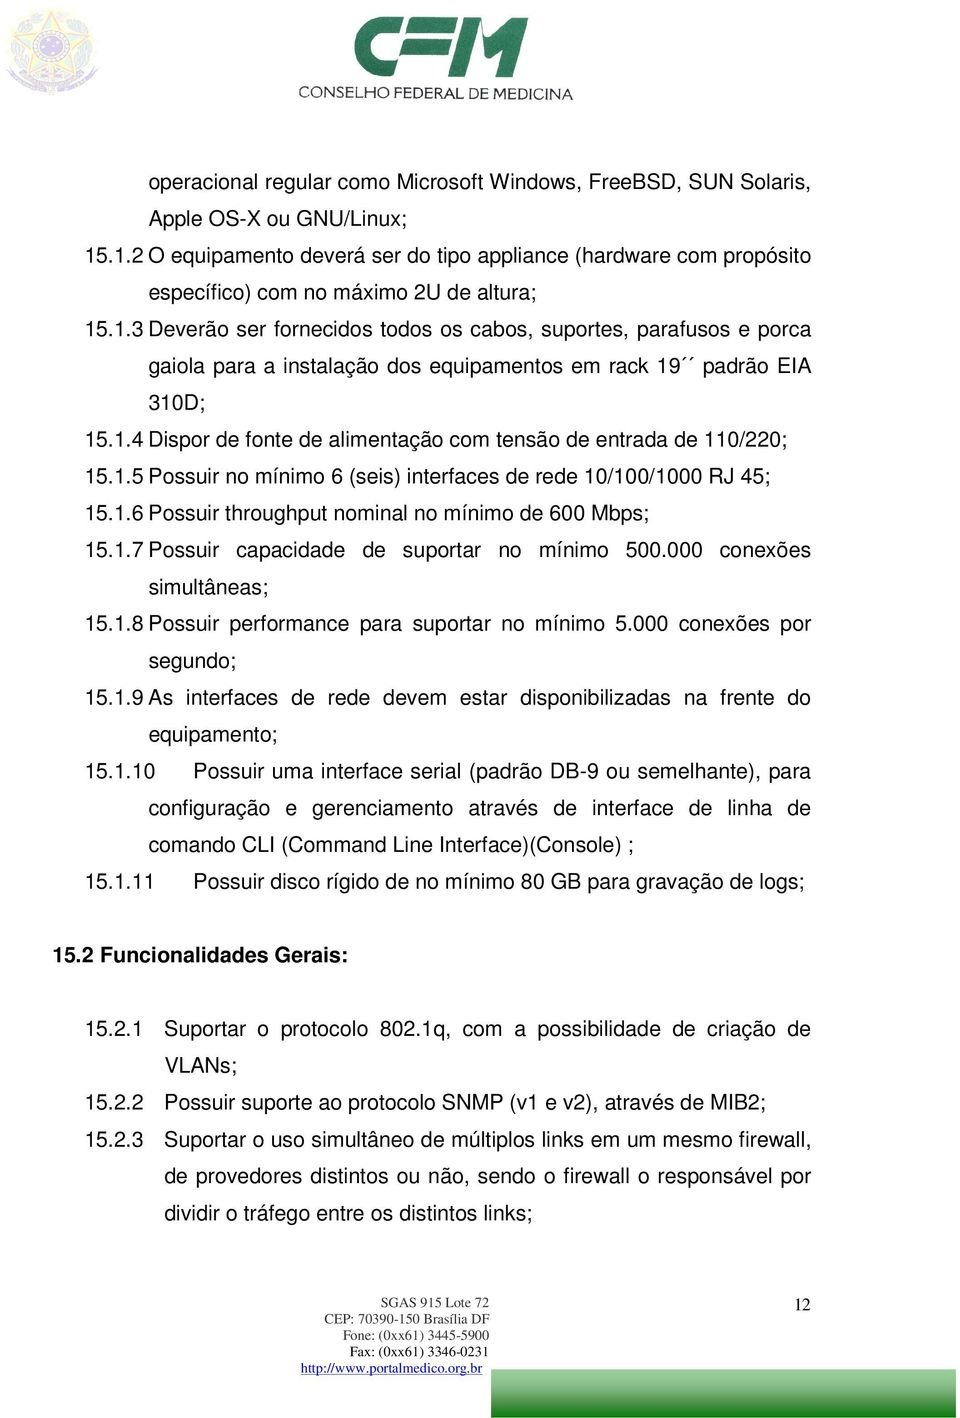 1.4 Dispor de fonte de alimentação com tensão de entrada de 110/220; 15.1.5 Possuir no mínimo 6 (seis) interfaces de rede 10/100/1000 RJ 45; 15.1.6 Possuir throughput nominal no mínimo de 600 Mbps; 15.